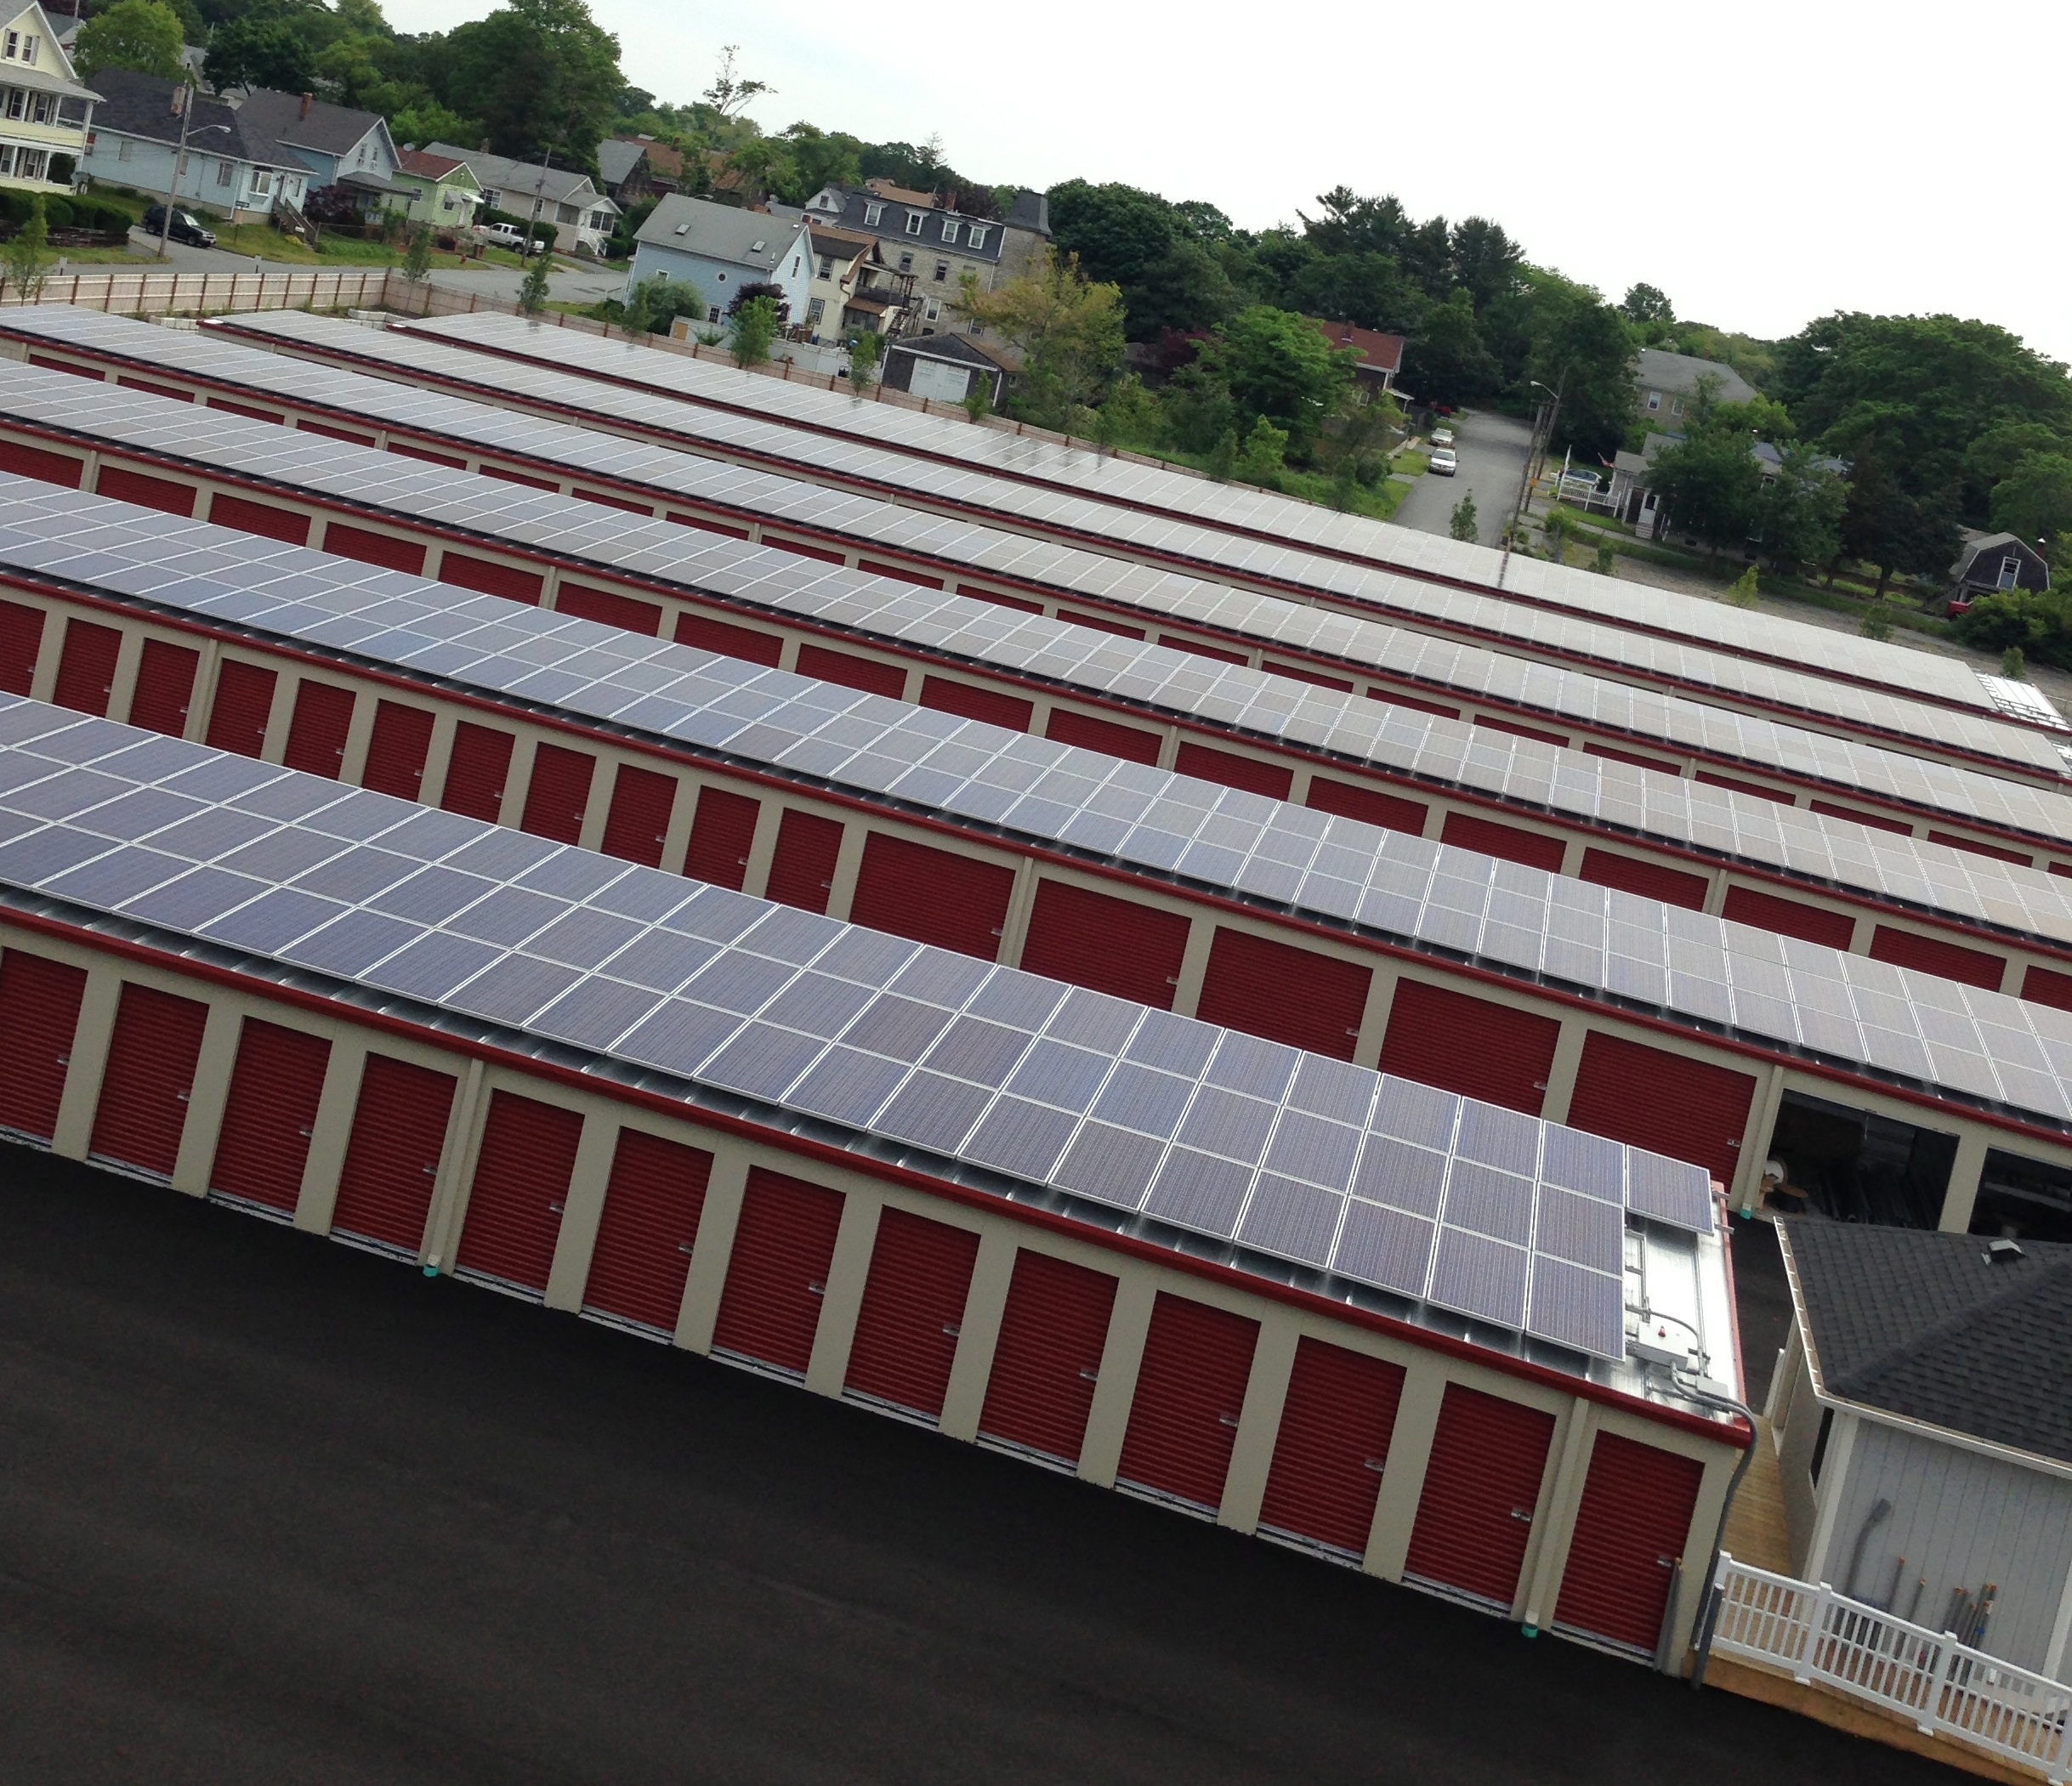 All of the storage units' rooftops generate electricity